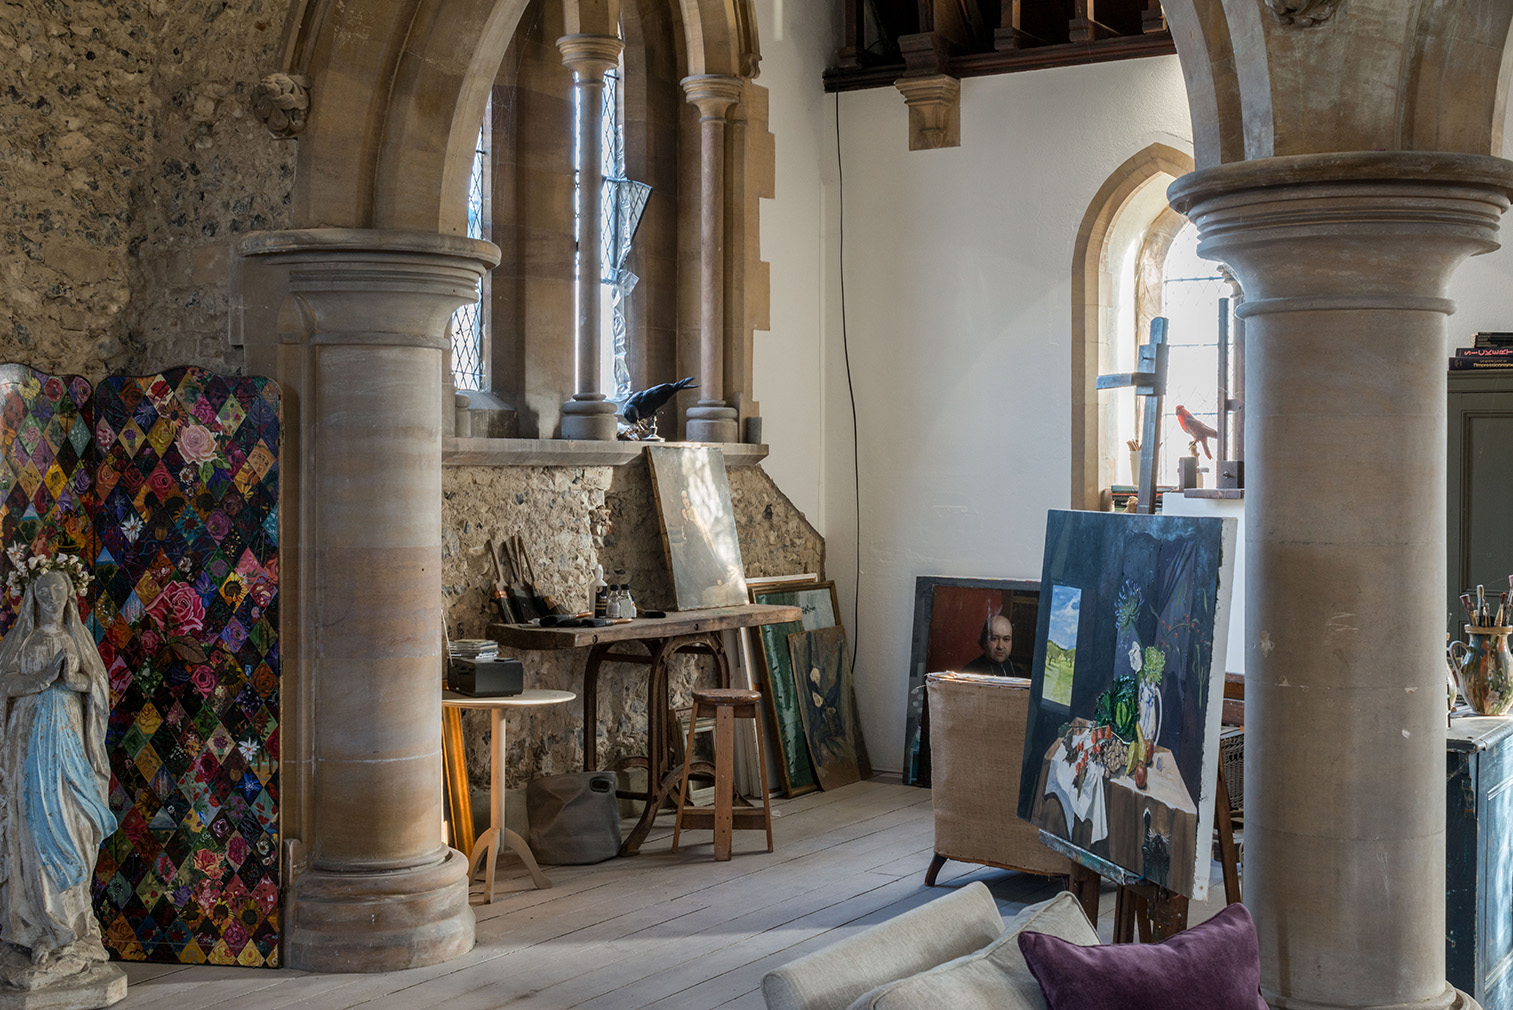 Go inside a dramatic Gothic church conversion in the UK's Kent countryside